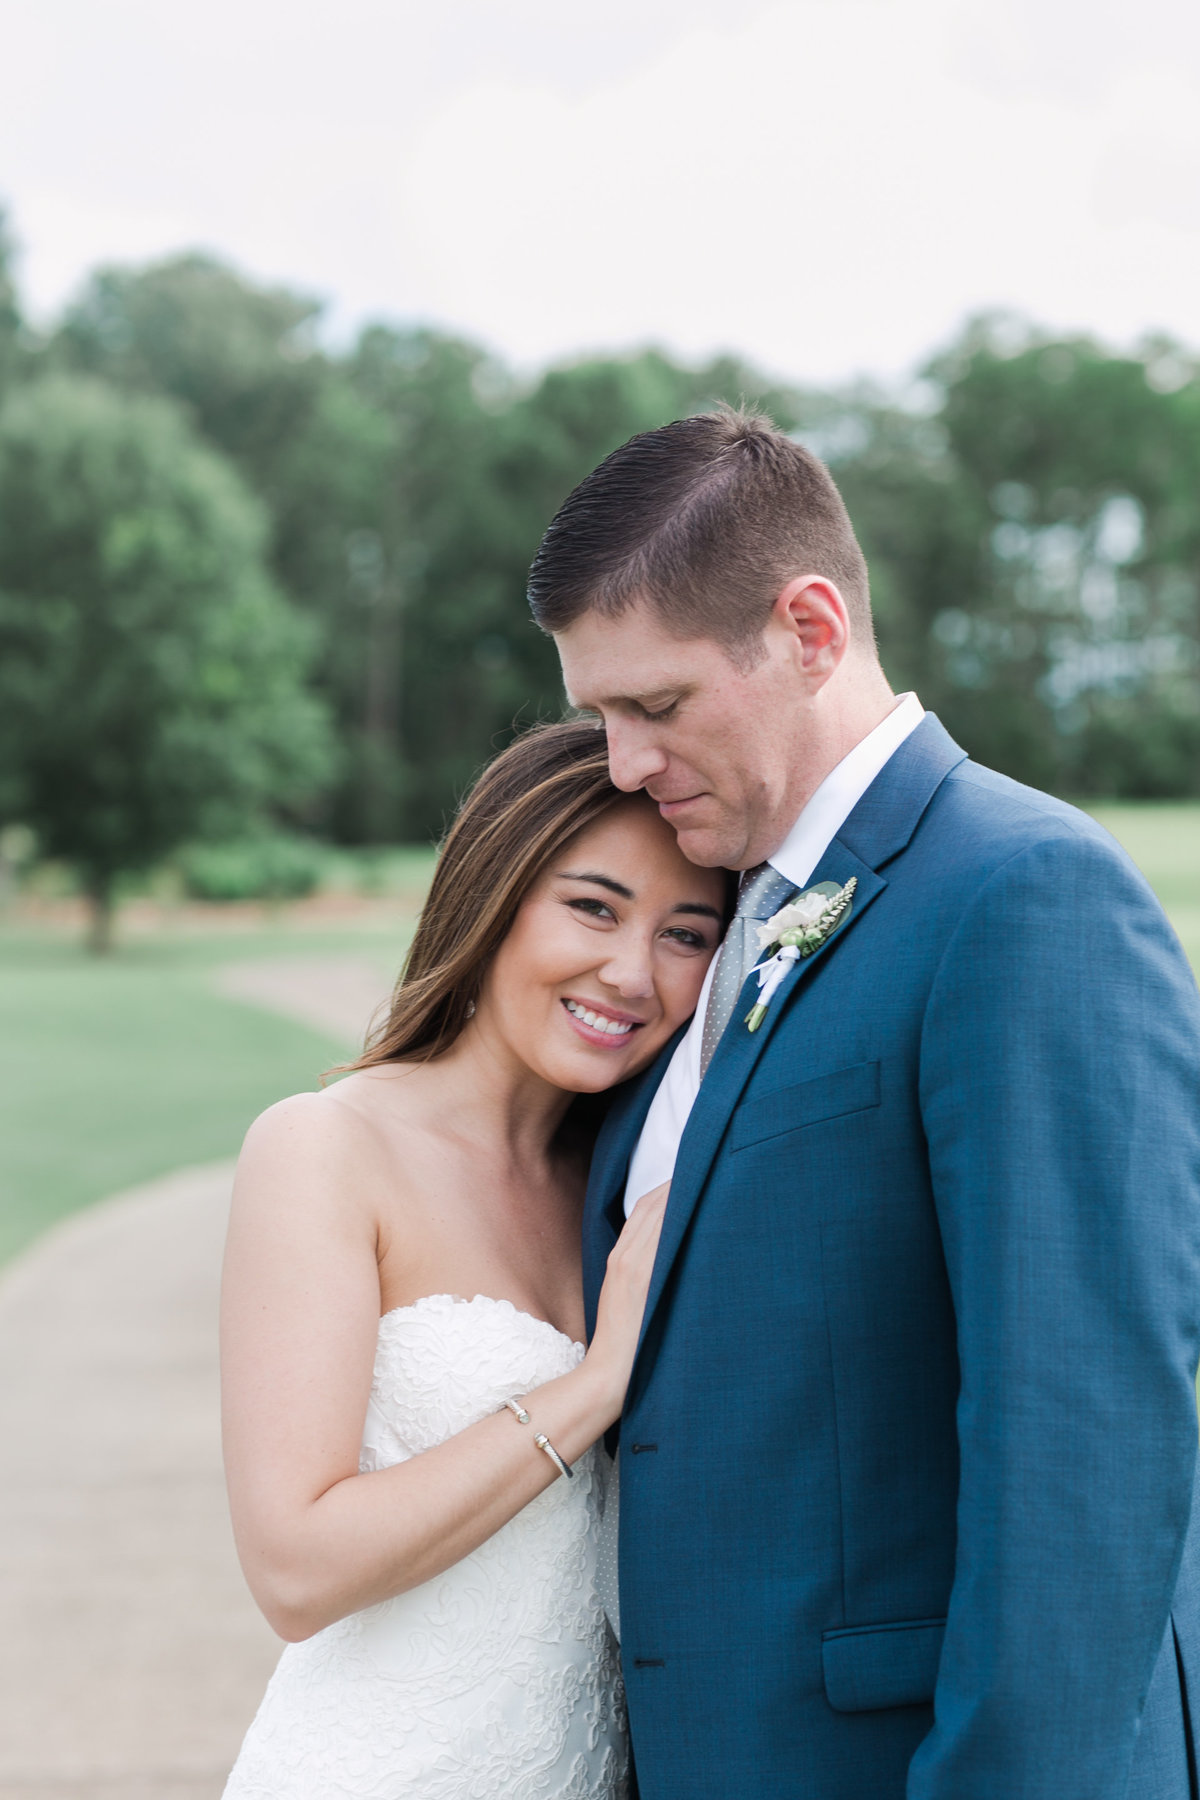 Elizabeth Friske Photography 2016 Wedding  Images-132